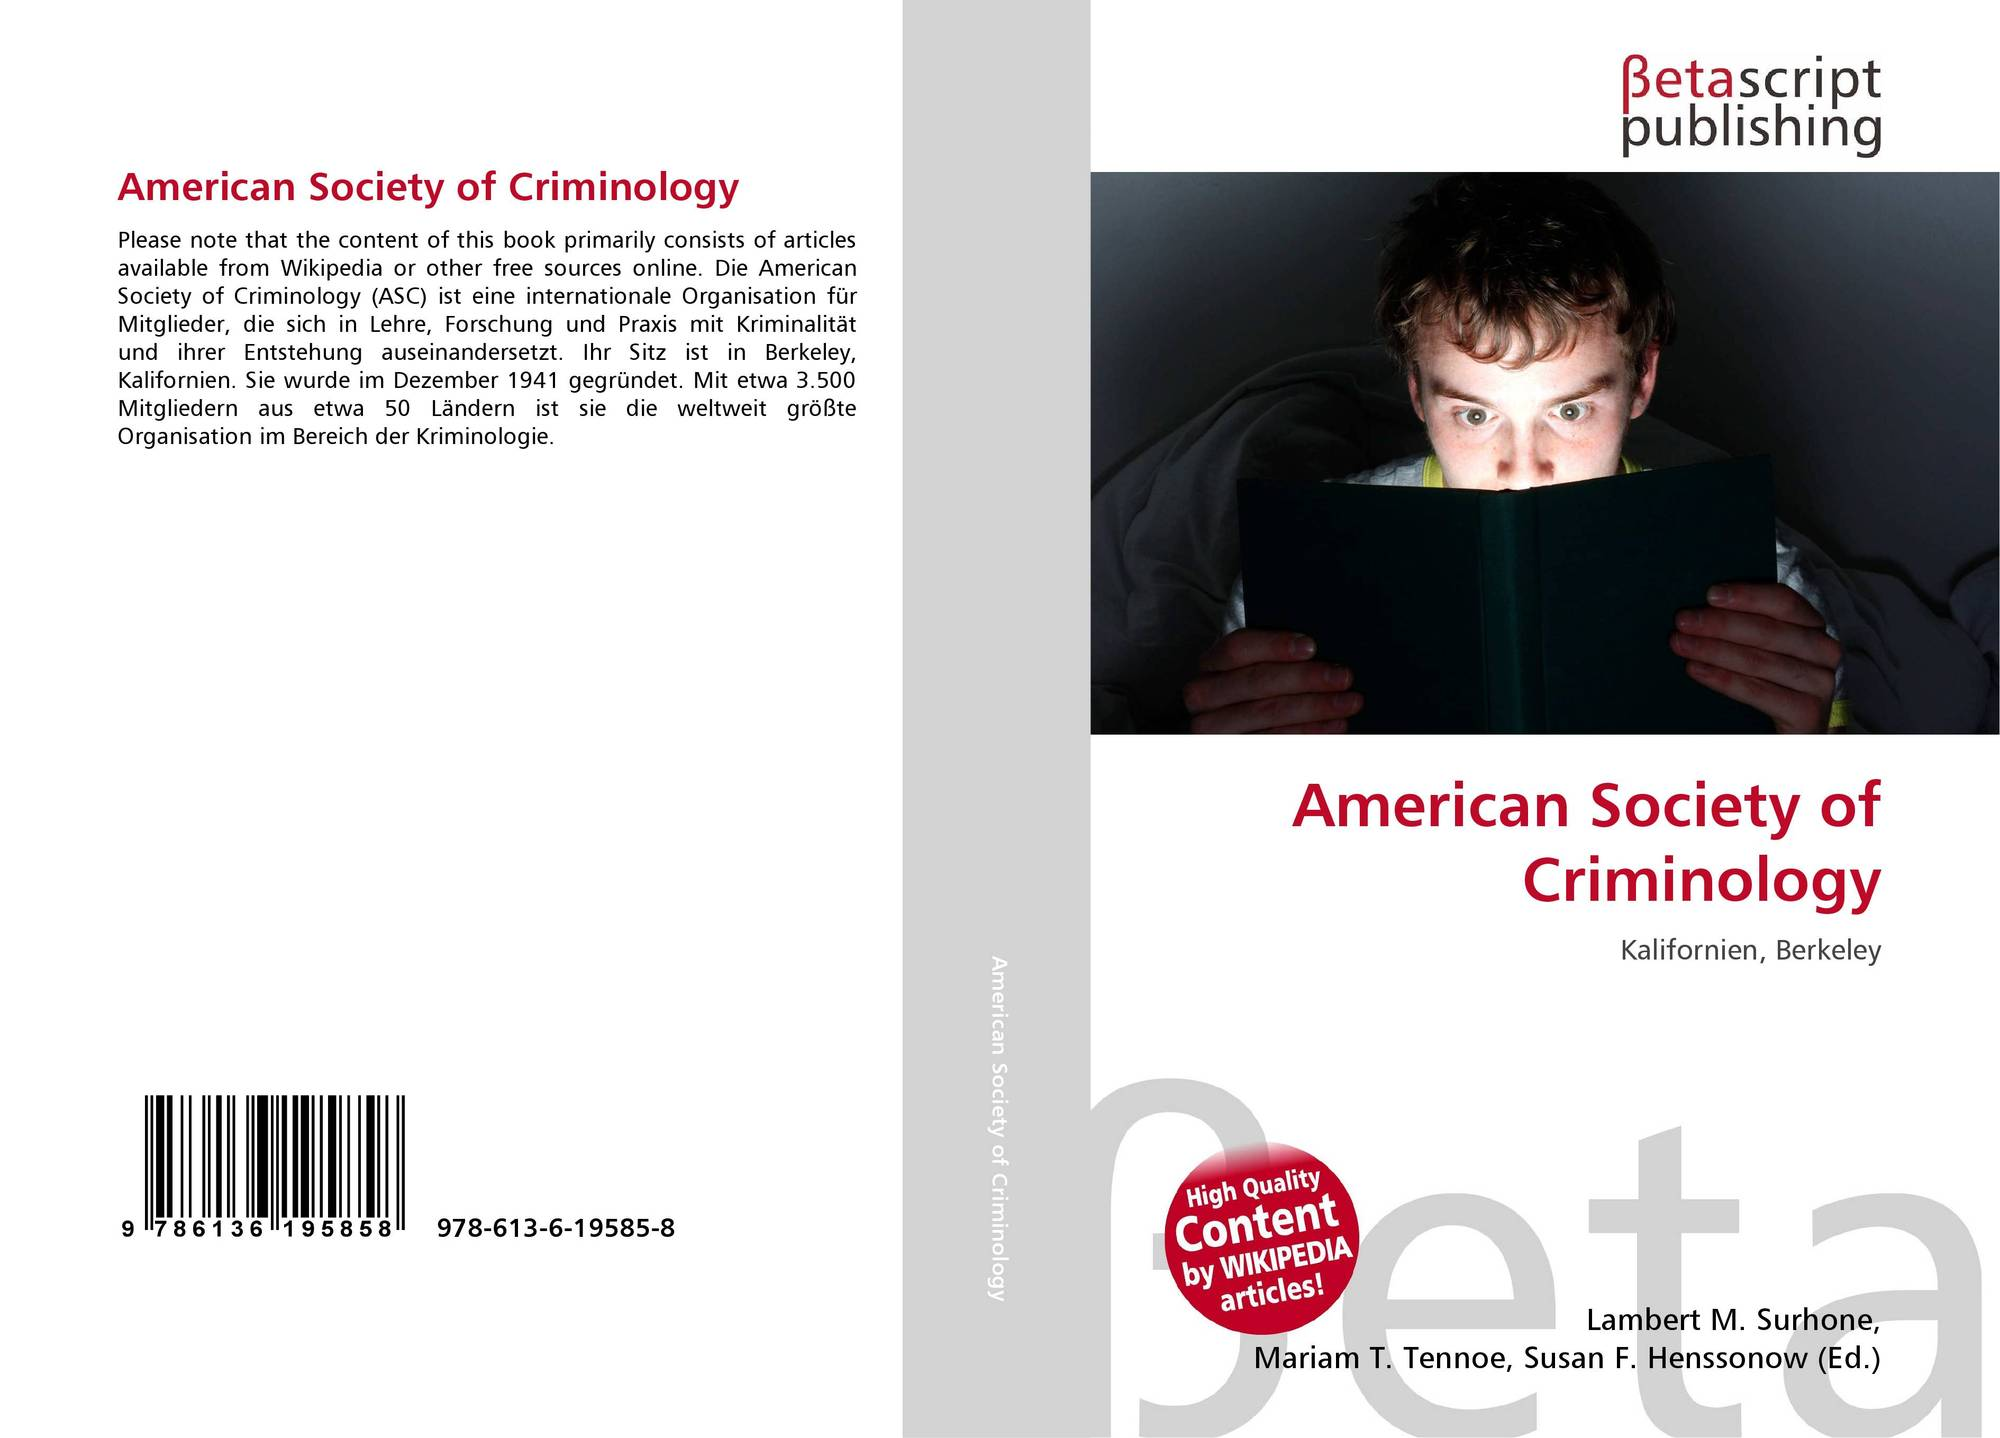 criminology in the society The american society of criminology is an international group that studies criminology at all levels, from the scientific to the scholarly their goal is to understand, control, and prevent crime and delinquency.